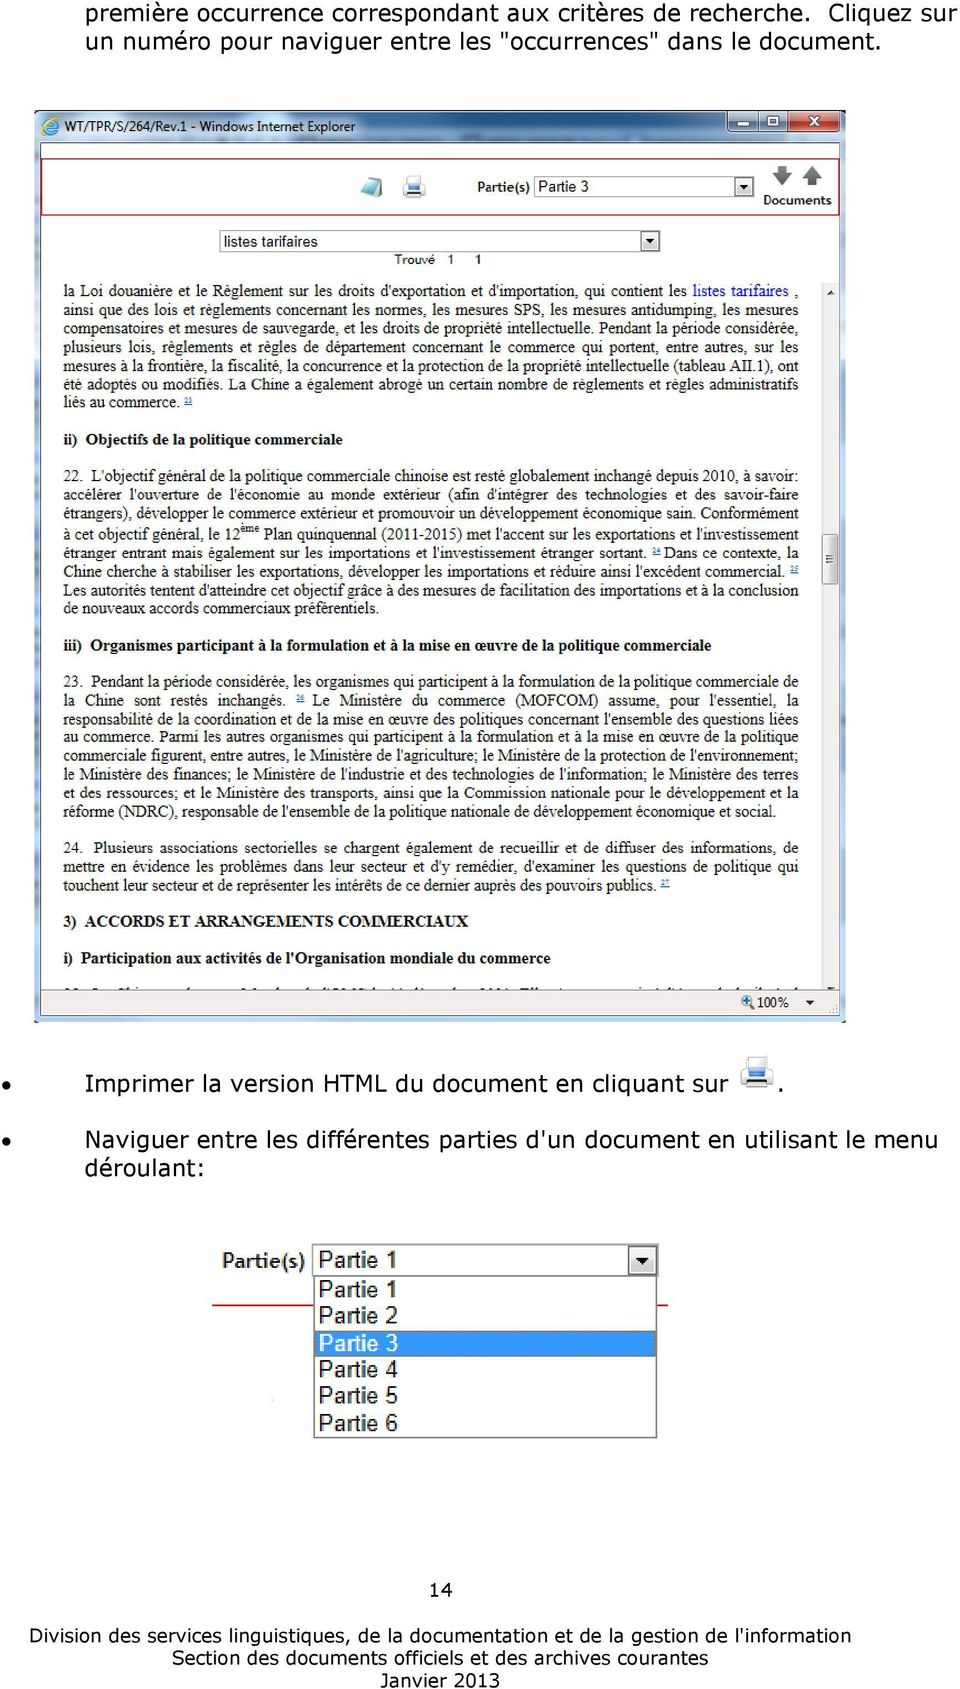 document. Imprimer la version HTML du document en cliquant sur.